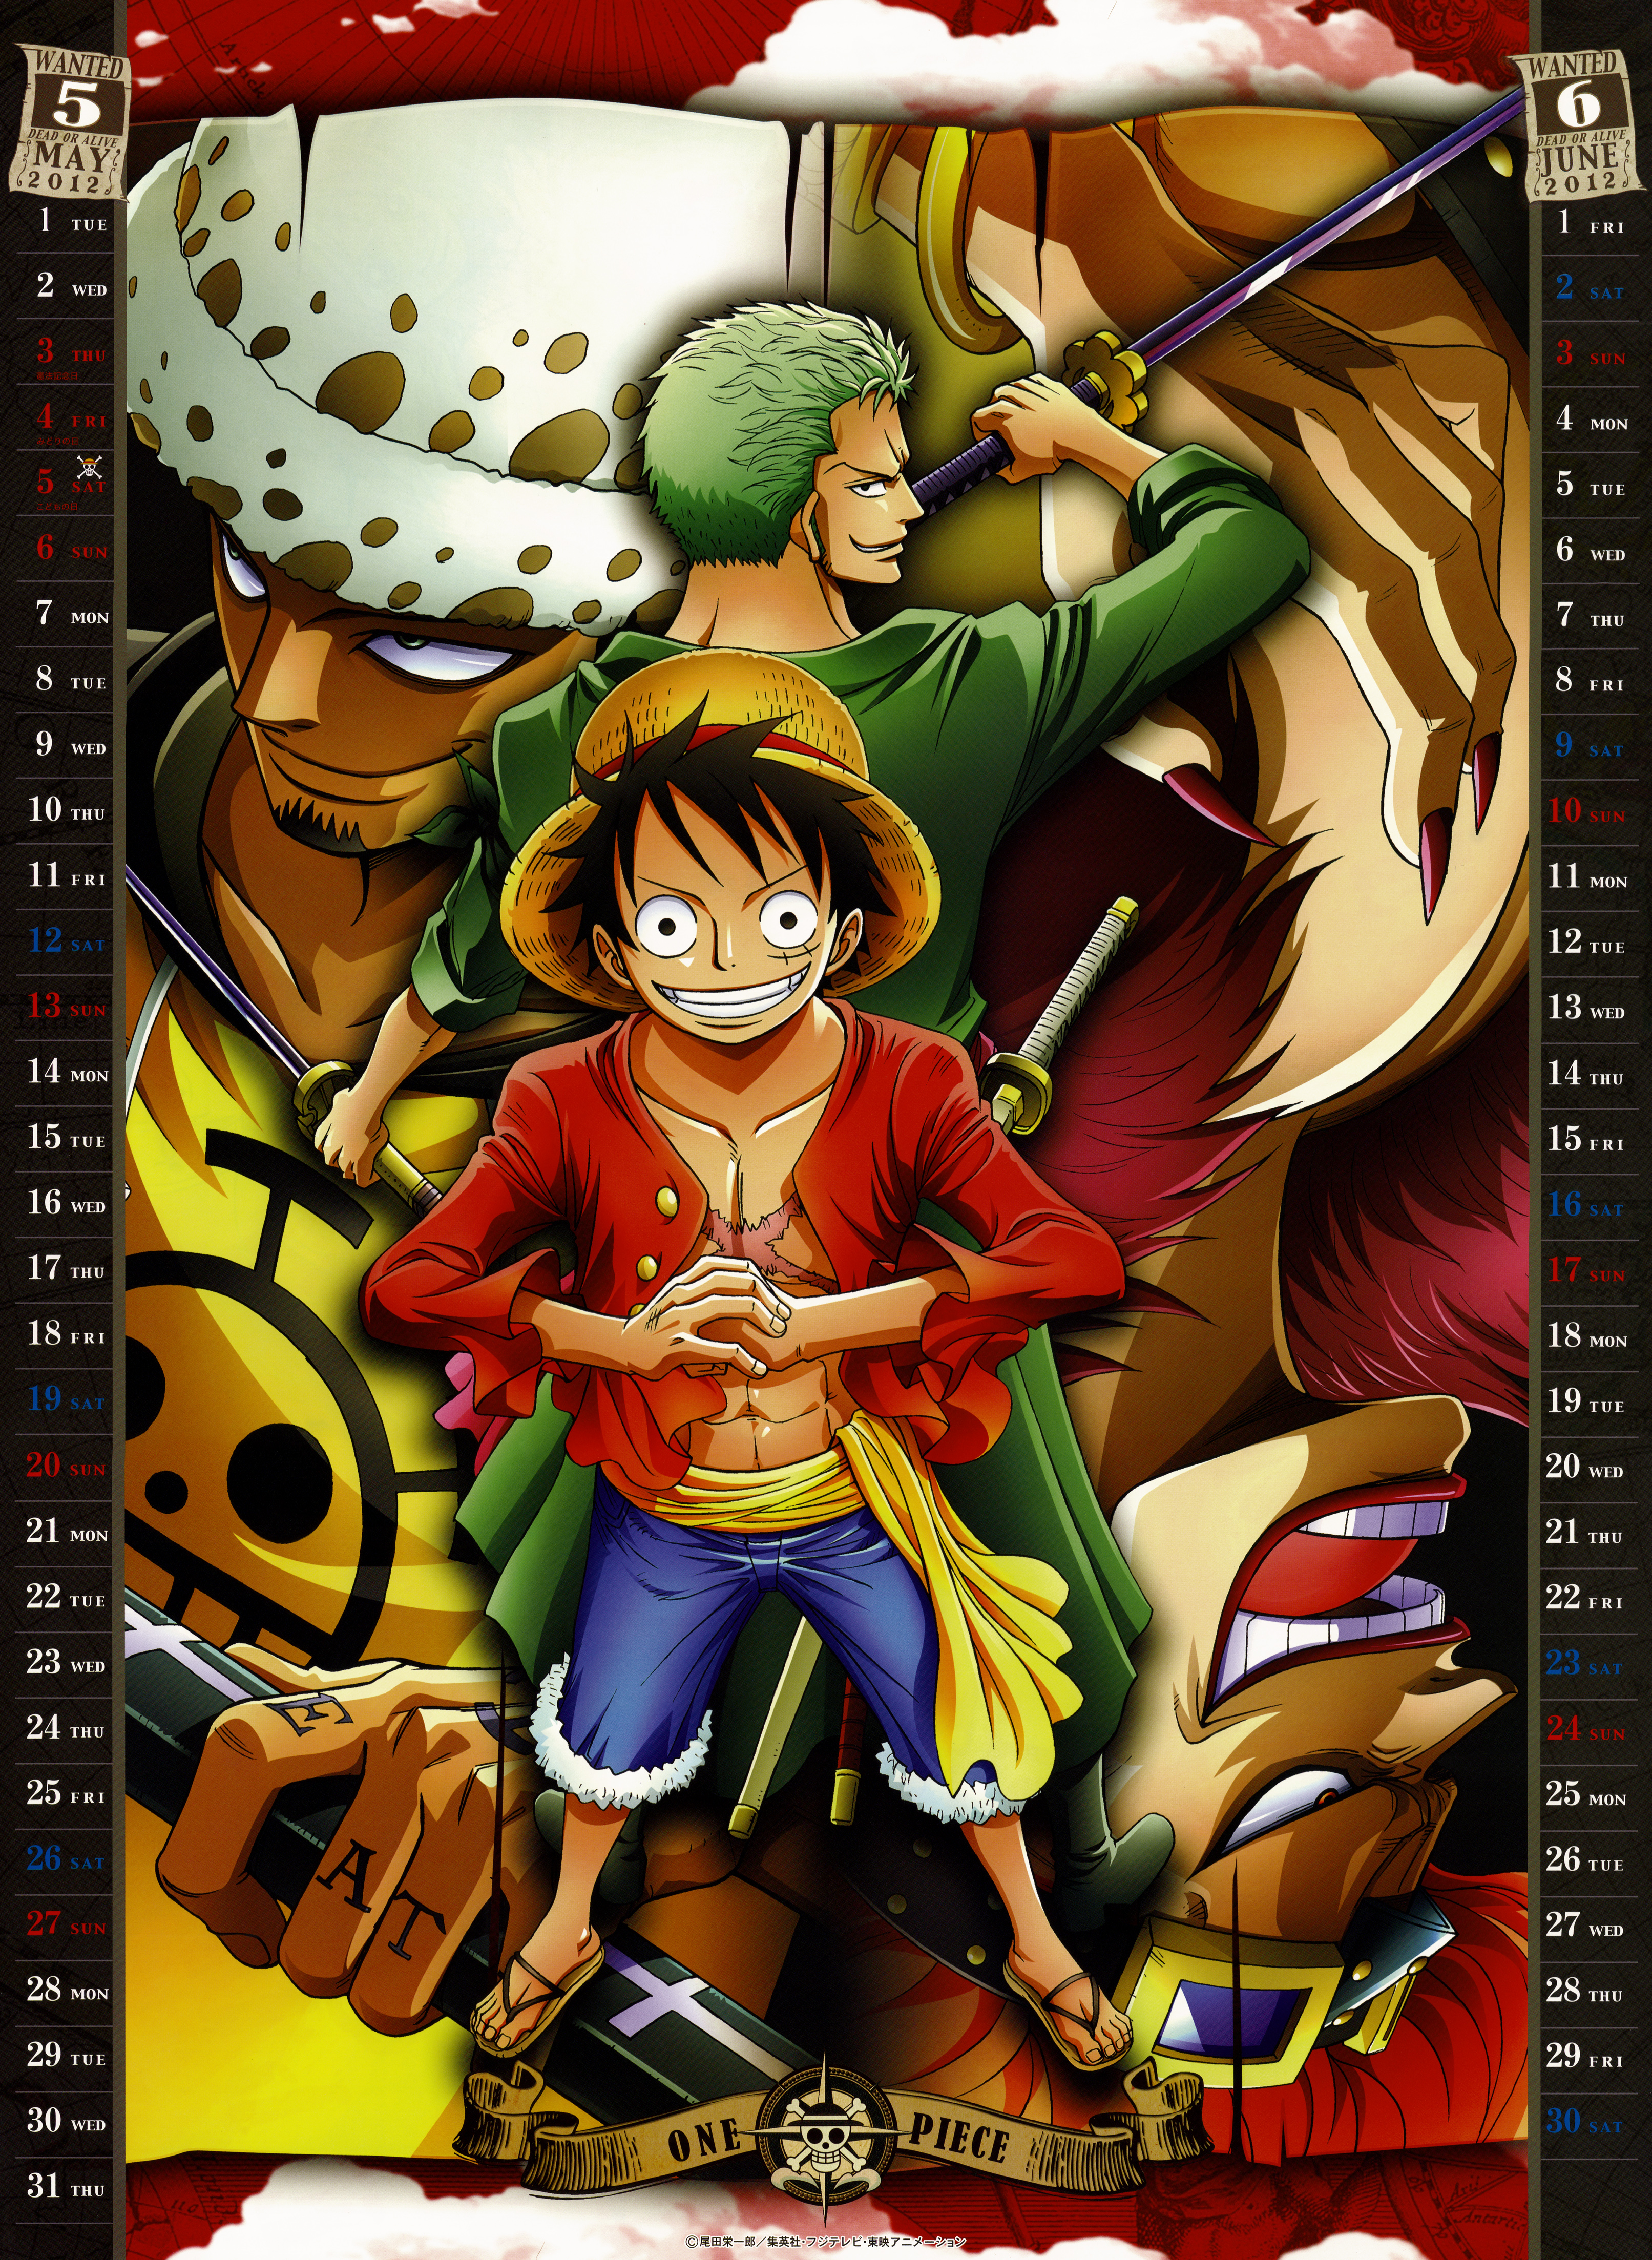 Calendar Art Piece : One piece image  zerochan anime board